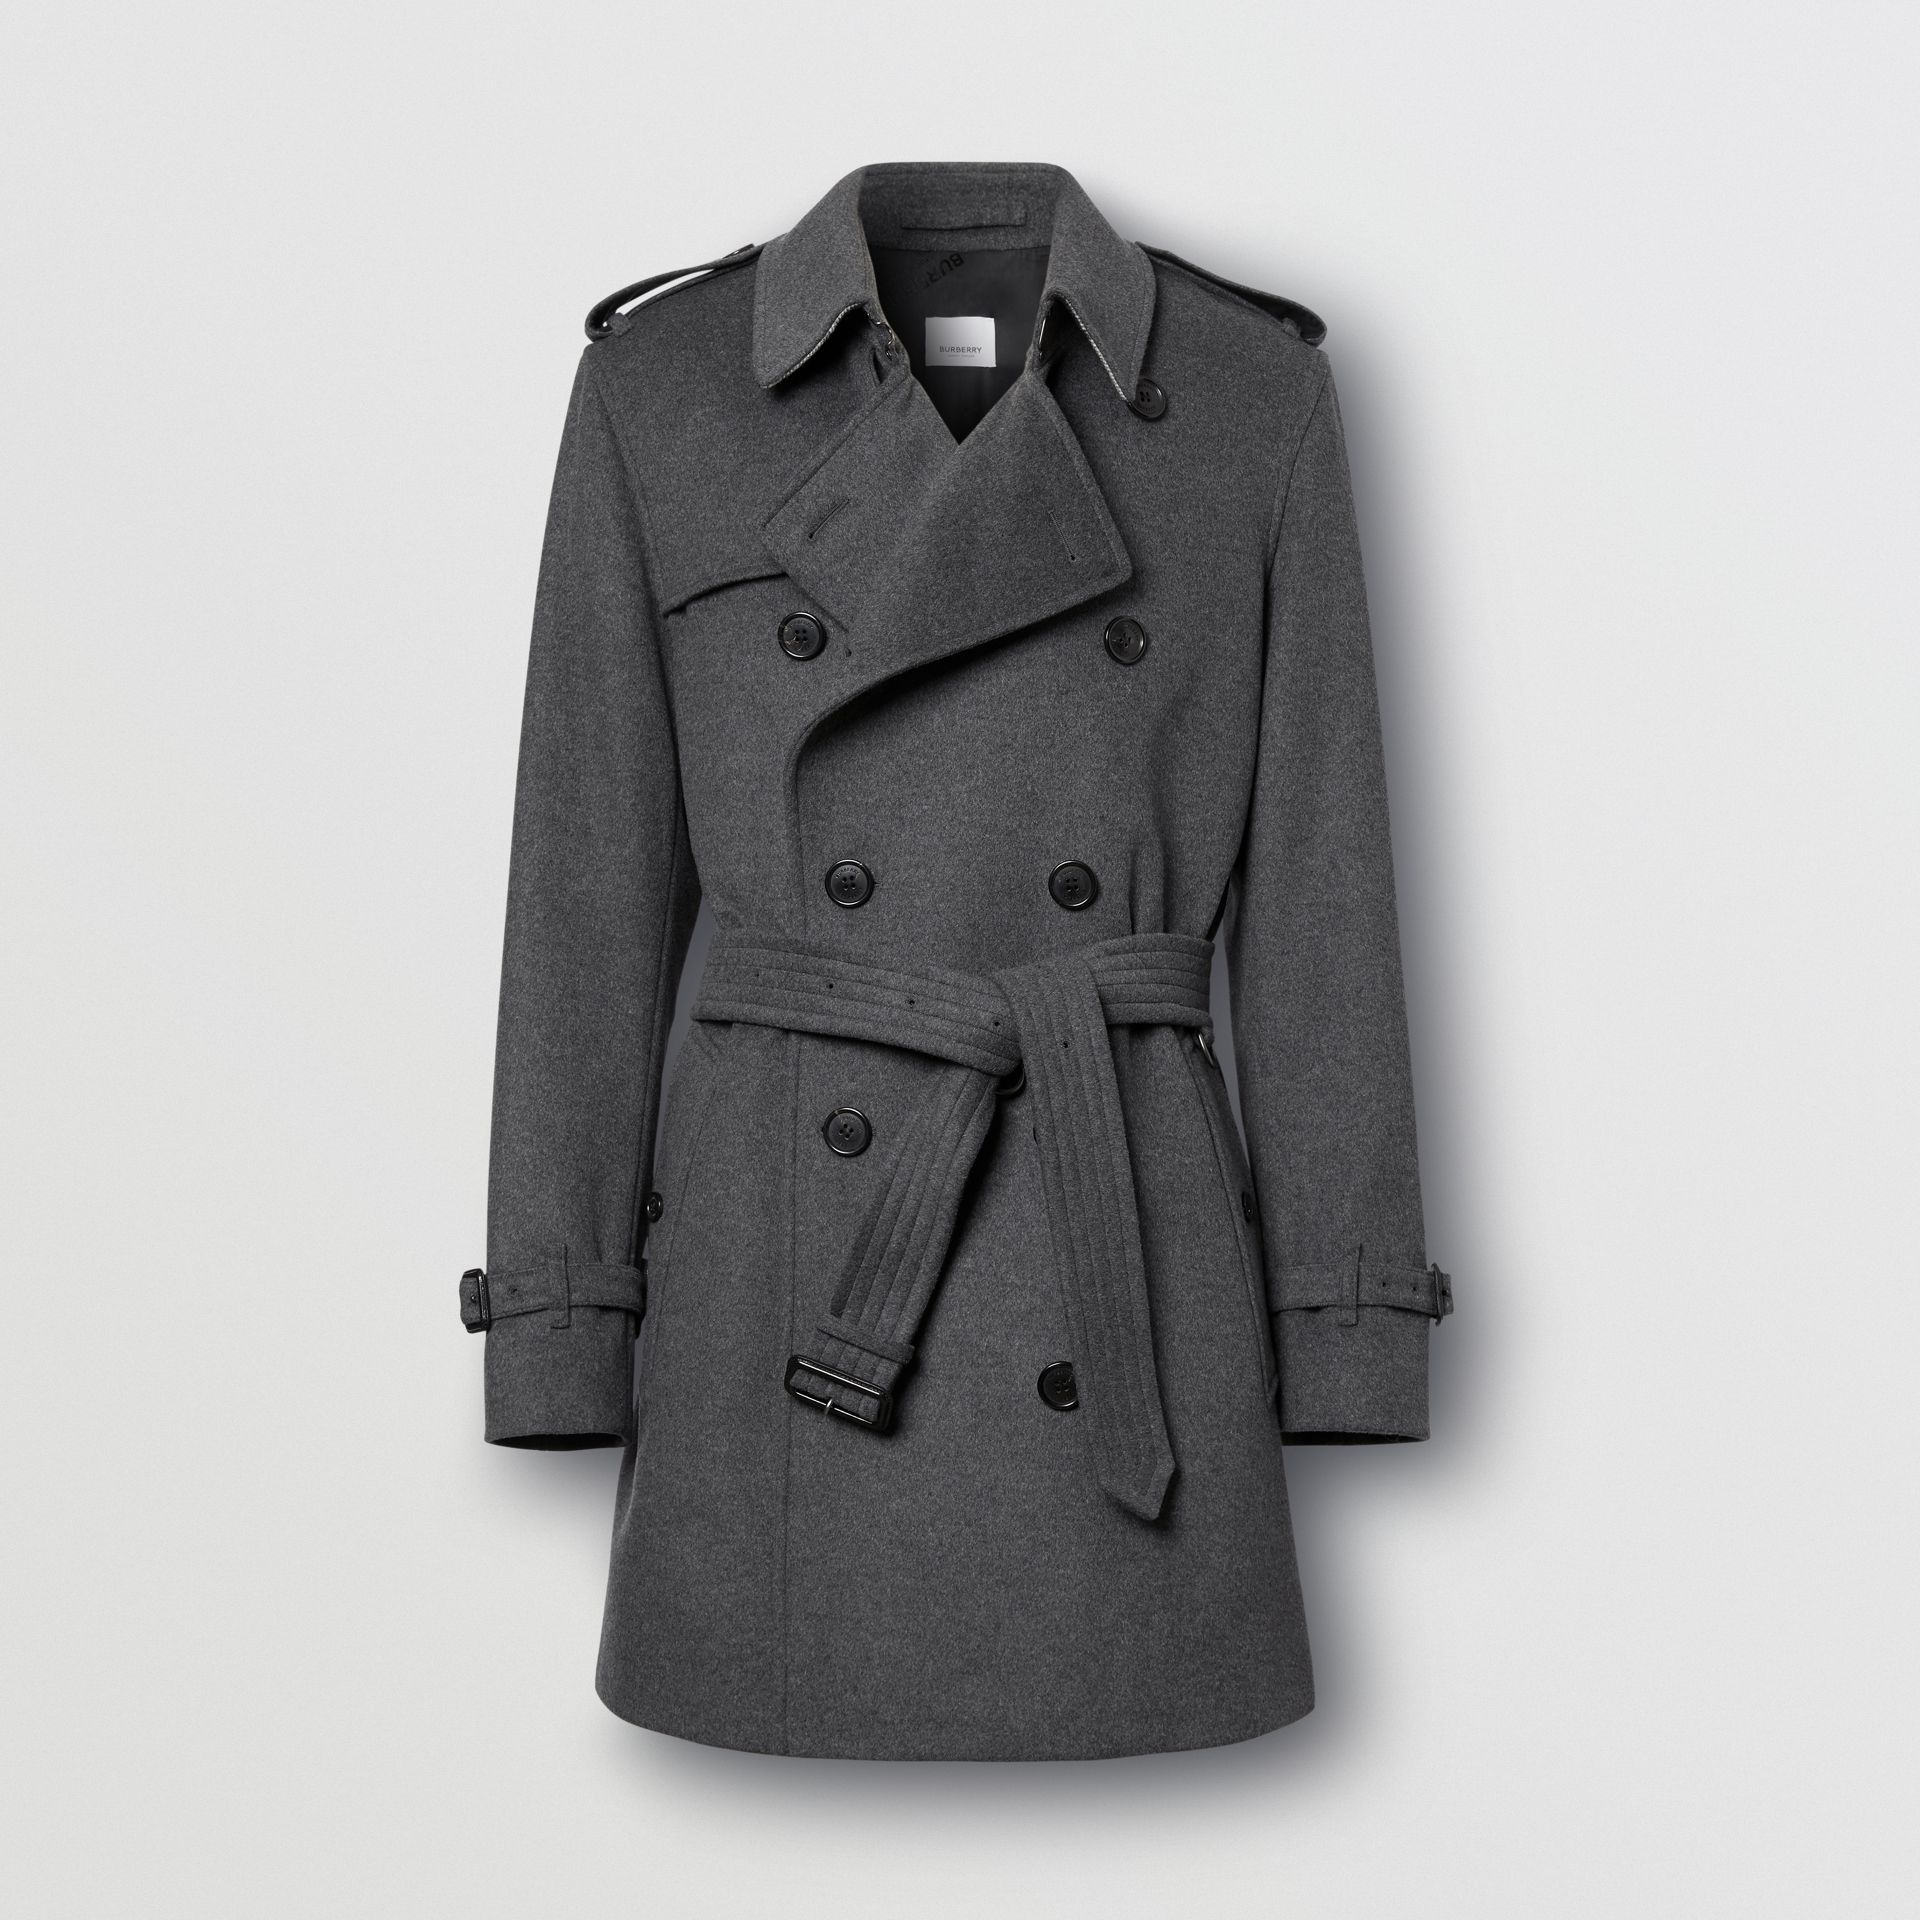 Wool Cashmere Trench Coat in Charcoal - Men | Burberry Hong Kong S.A.R - gallery image 3